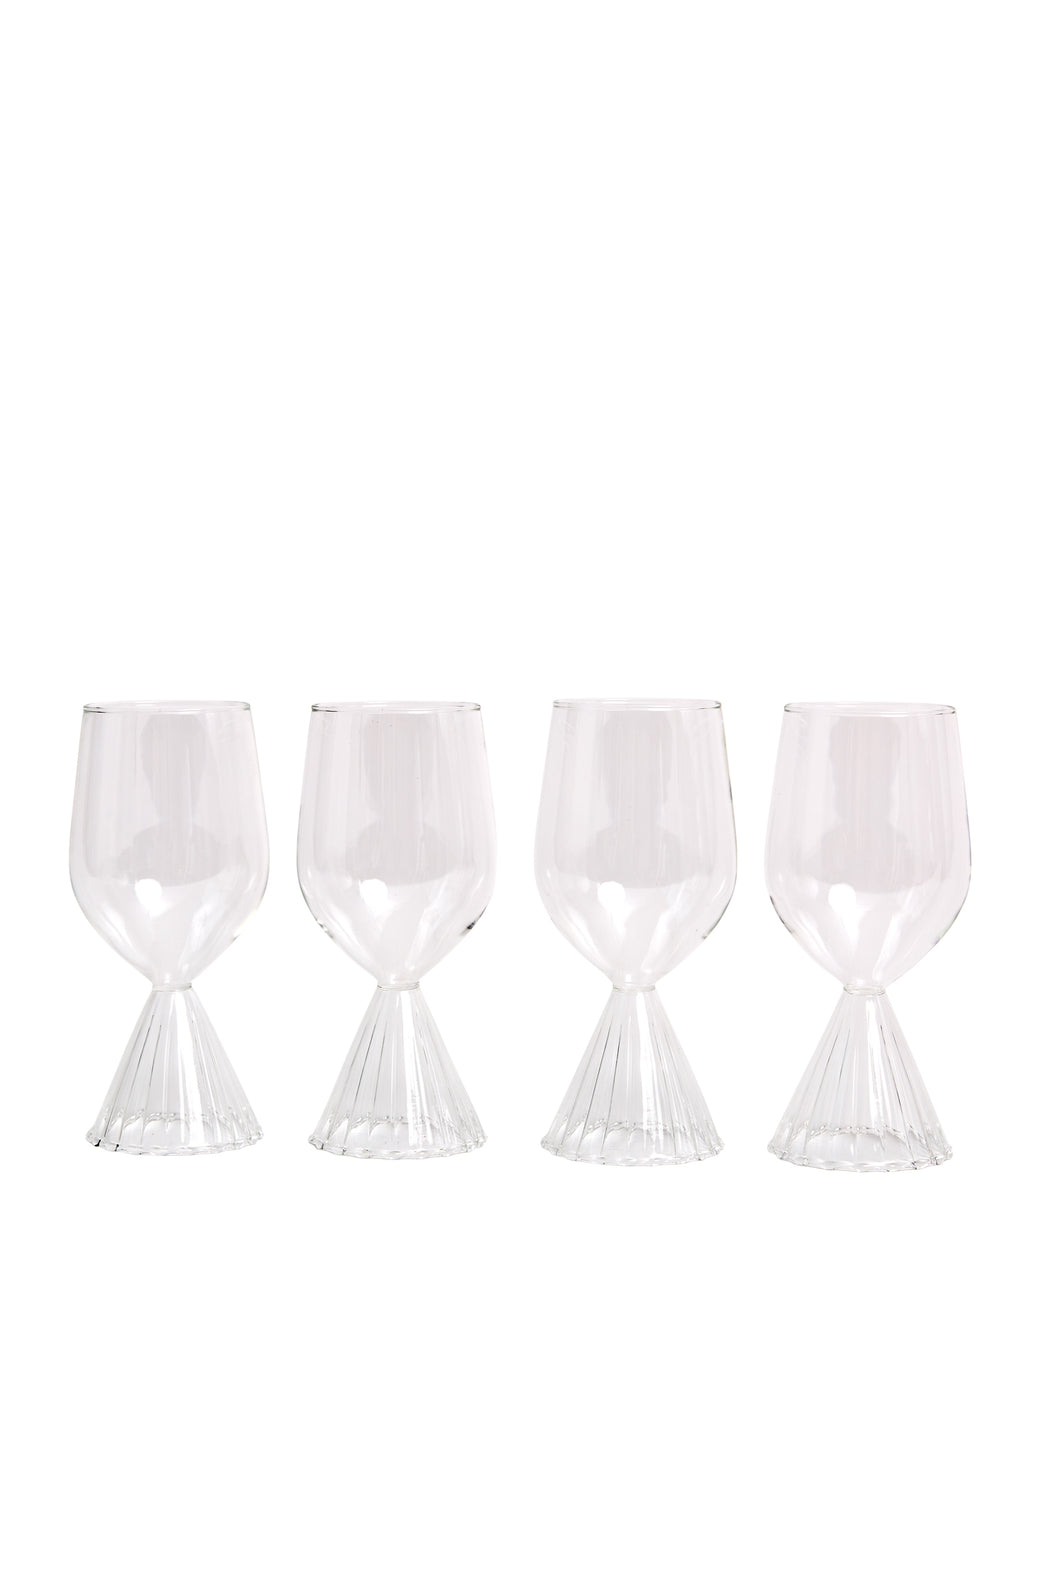 Tutu White Wine Glassware Set